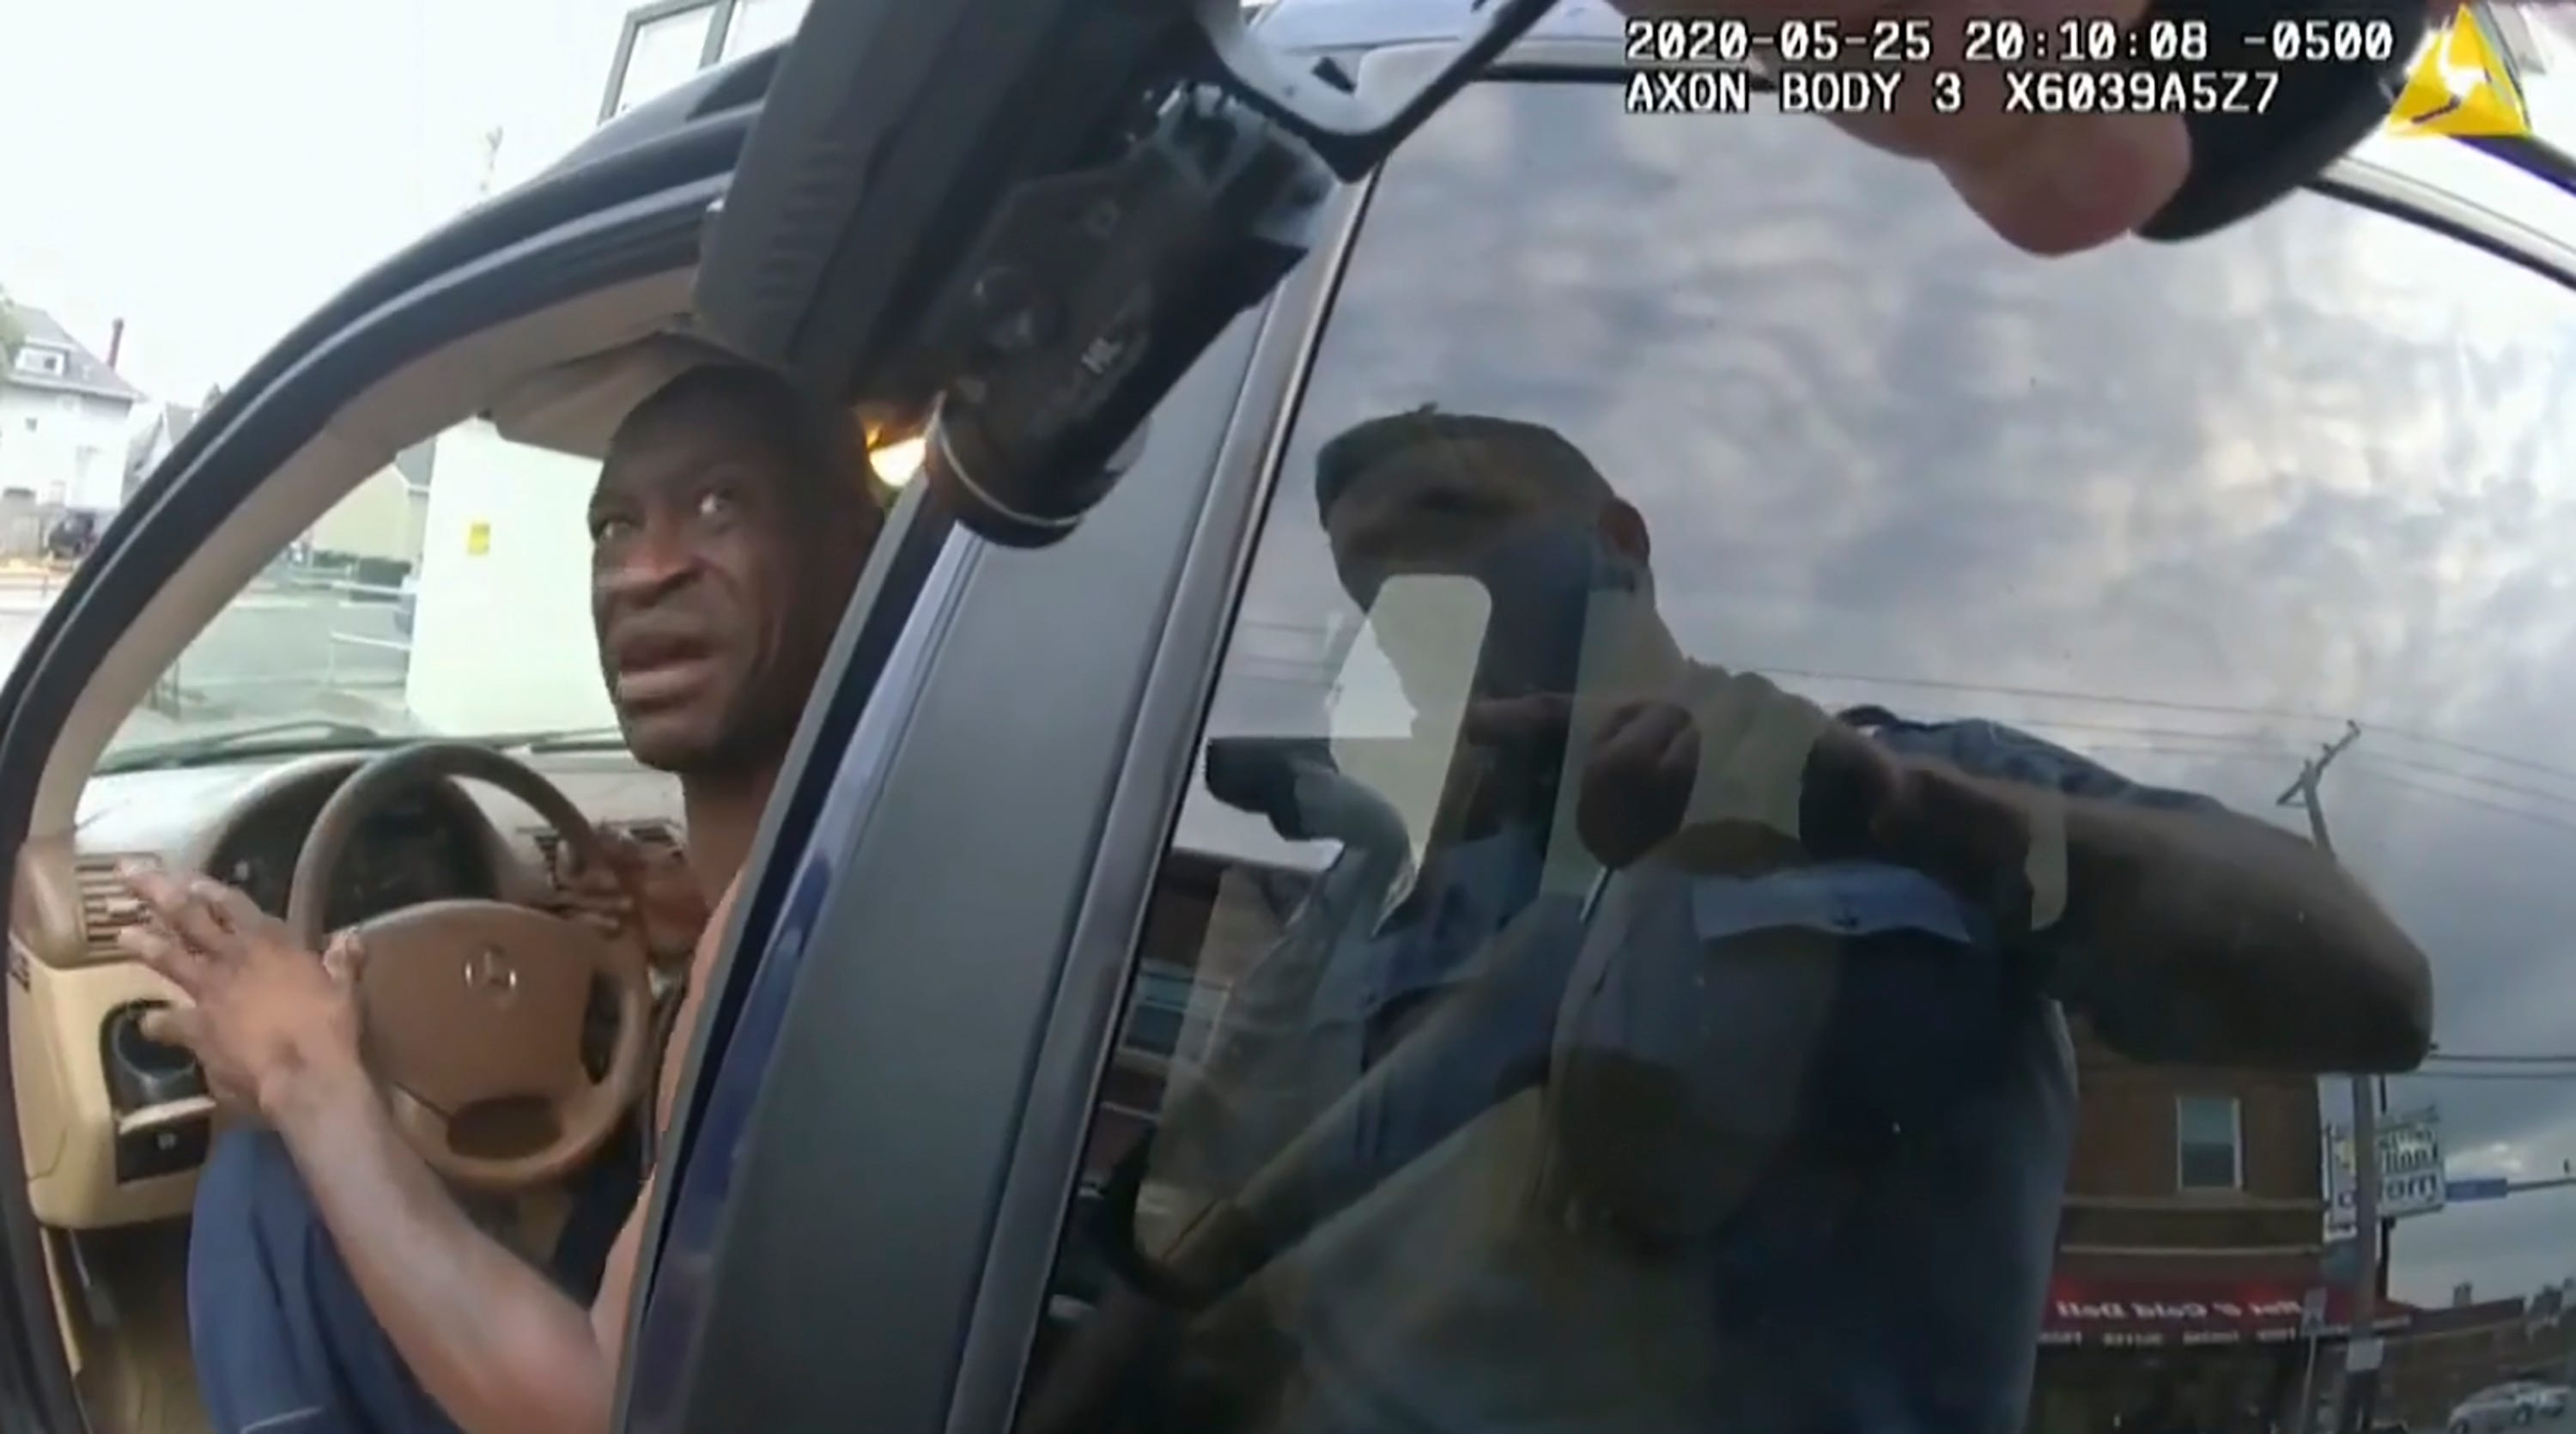 In this image from police body cam video, a Minneapolis police officer approaches George Floyd with a gun drawn, on May 25, 2020, outside Cup Foods in Minneapolis, as it is shown Wednesday, March 31, 2021, in the trial of former Minneapolis police Officer Derek Chauvin, in Floyd's death, at the Hennepin County Courthouse in Minneapolis.